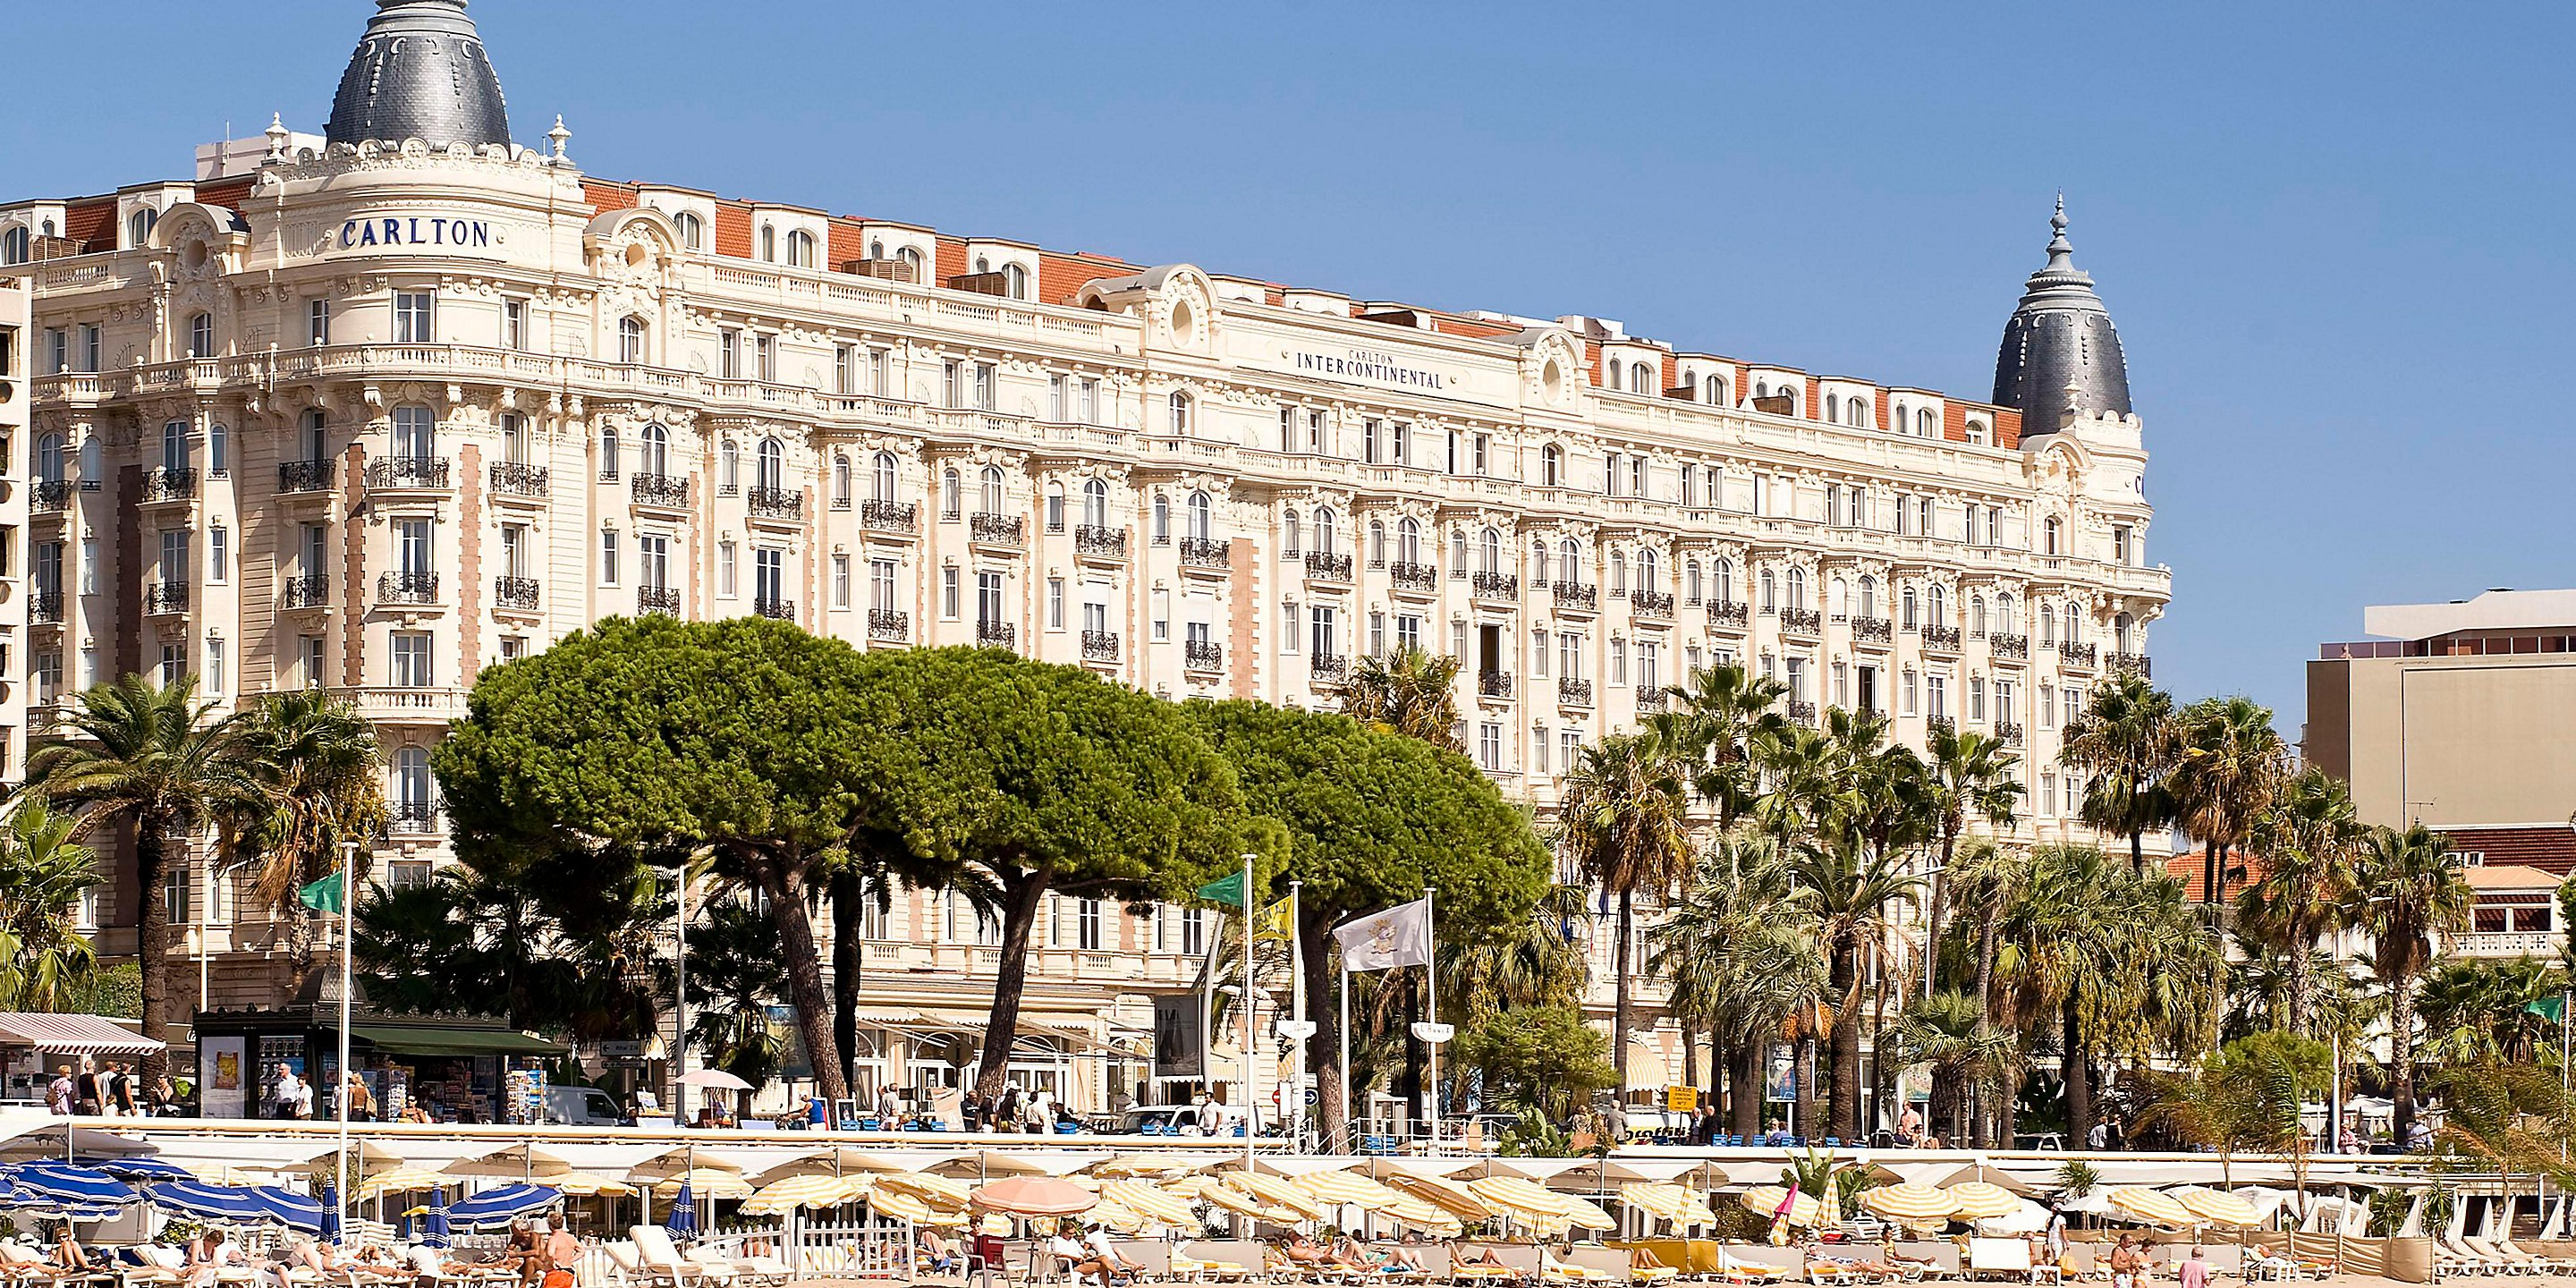 September 2019 – Our famous annual Gala Dinner-Dance at the Carlton Hotel in Cannes